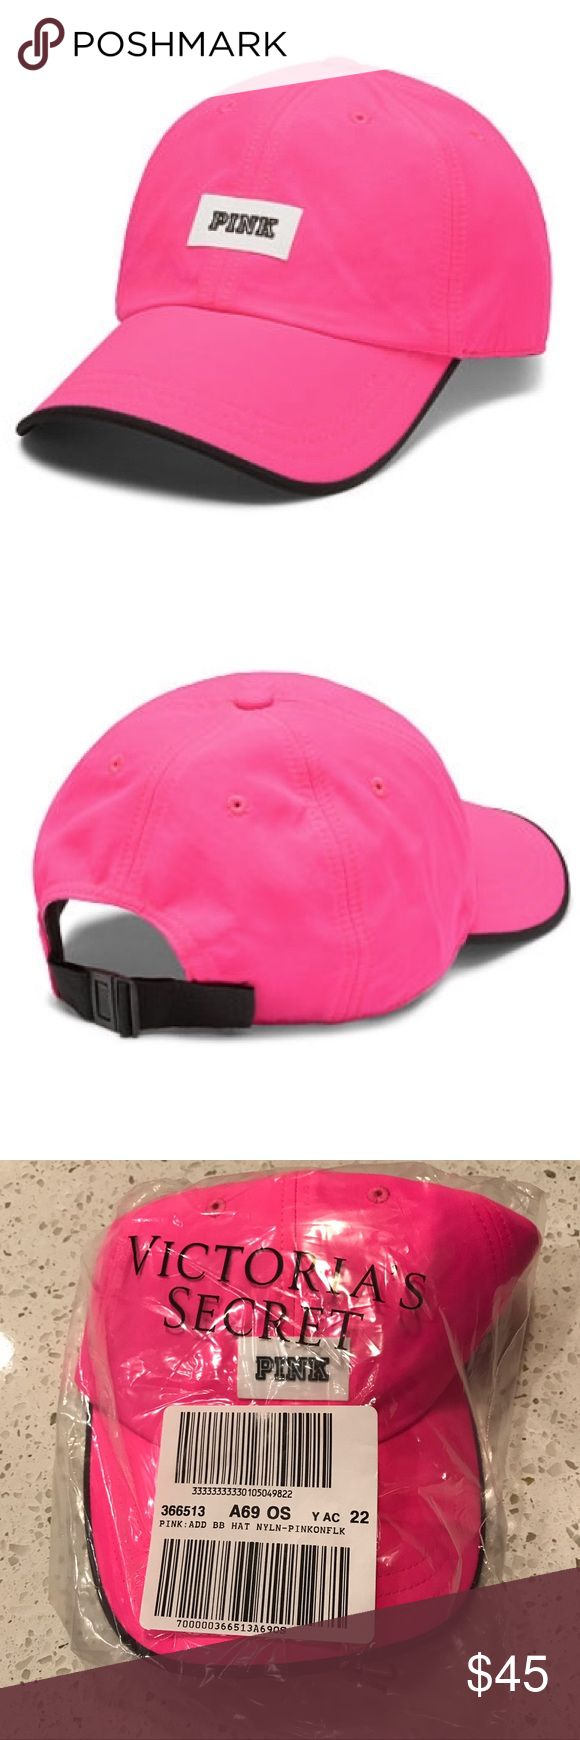 VS VICTORIAS SECRET PINK SPORT CLIP BASEBALL HAT VS VICTORIAS SECRET PINK SPORT CLIP BASEBALL HAT CAP   Product Details  Top it off in the season's must-have hat! Color: Pink on Fleek Sport clip Adjustable One size fits all Imported nylon.                                                          PAIR WITH THE PINK ON FLEEK VS VICTORIAS SECRET PINK SANDALS SLIDES I HAVE AVAILABLE!  PRICE FIRM PINK Victoria's Secret Accessories Hats